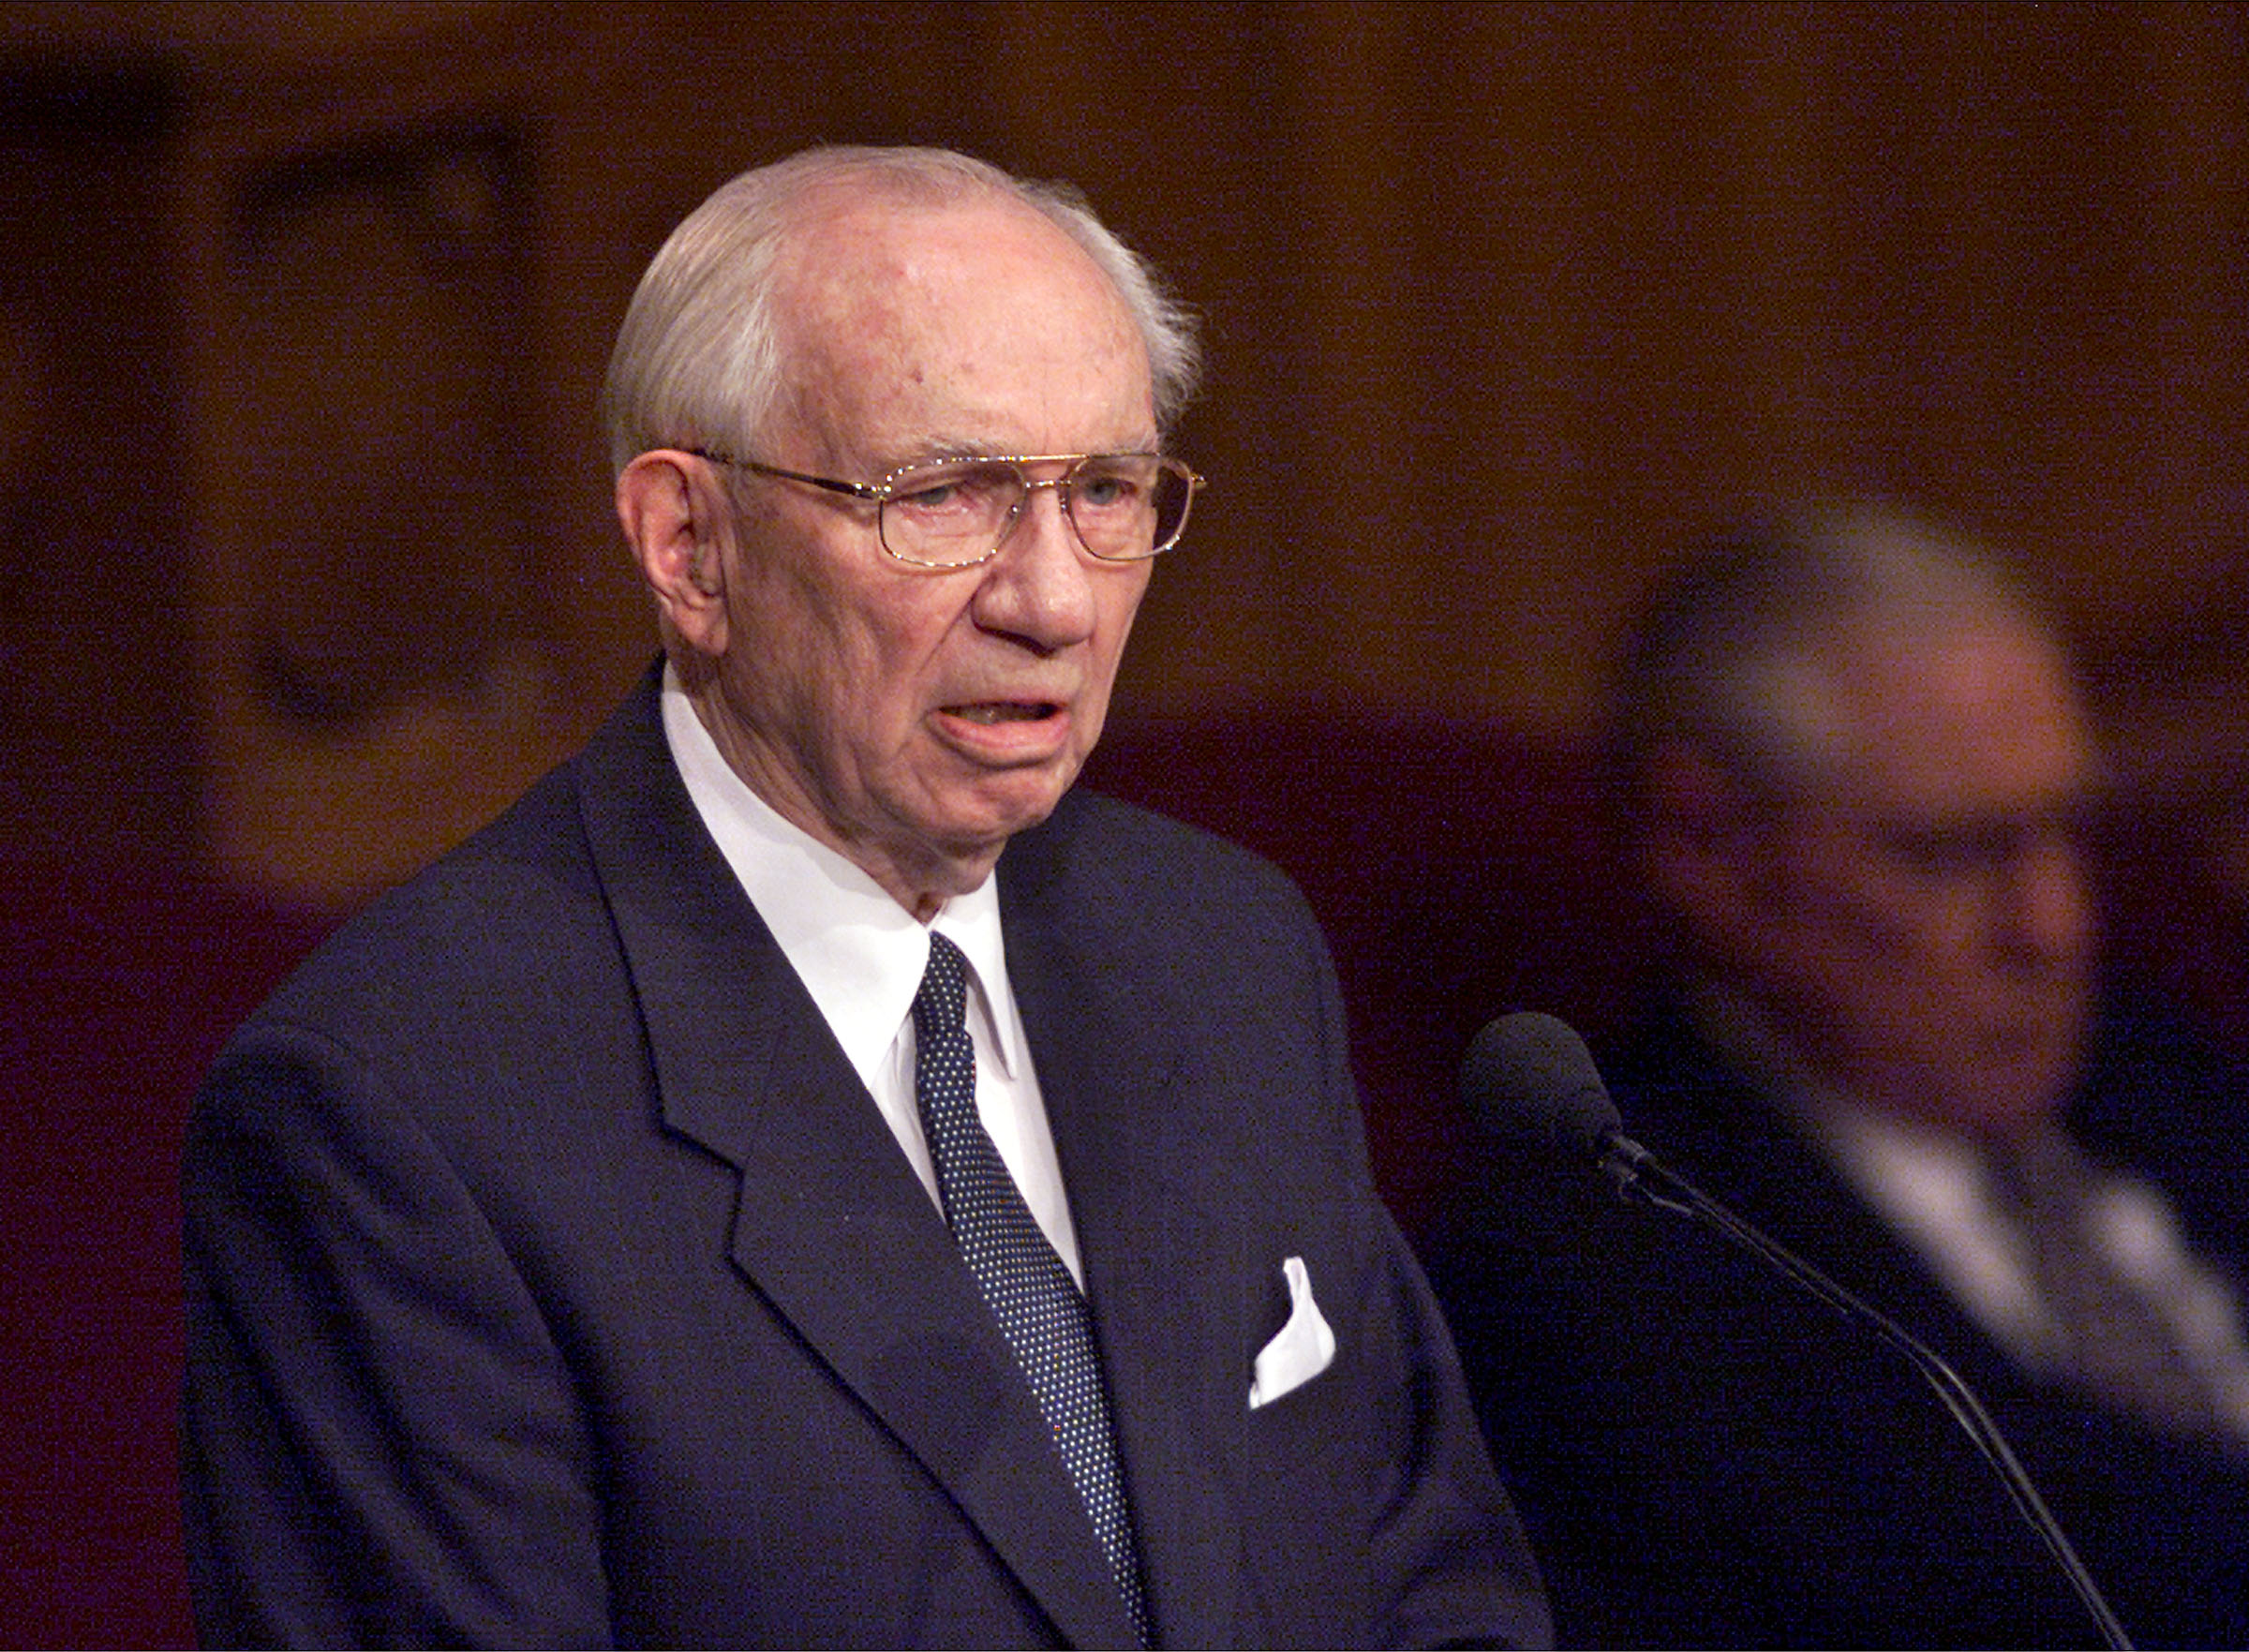 President Gordon B. Hinckley addresses the memorial service in honor of those who died in the terrorist attack on the United States Sept. 11, 2001.